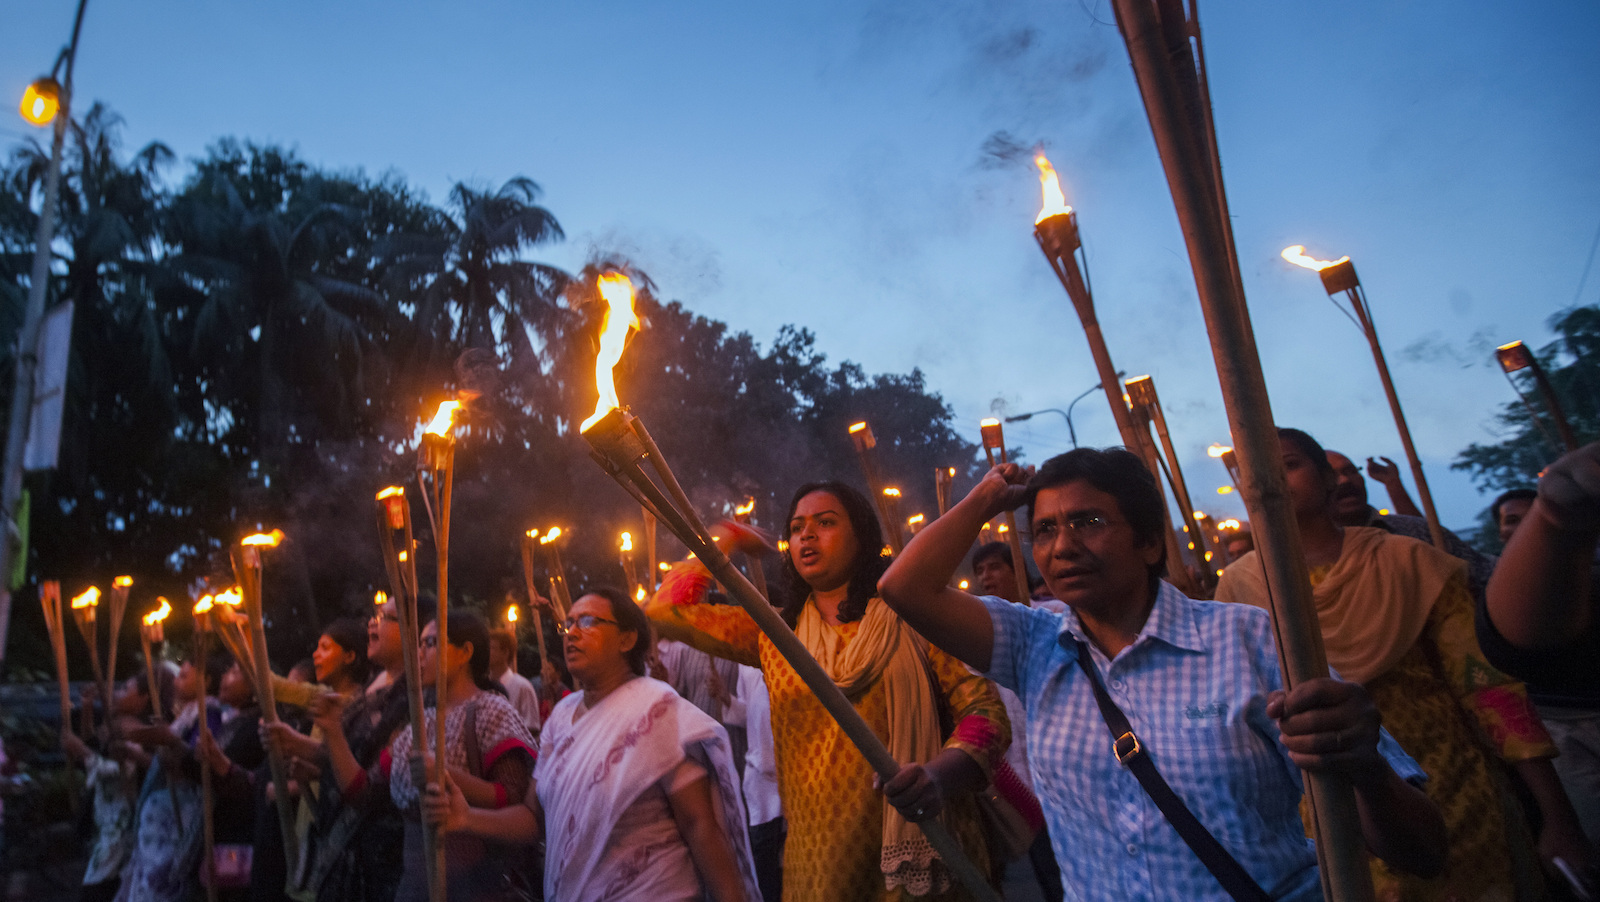 Bangladeshi secular activists participate in a torch rally held to protest against the killing of blogger Niloy Chottopadhay, 40, in Dhaka, Bangladesh, Saturday, Aug. 8, 2015. Suspected militants posing as tenants entered an apartment building and hacked to death the secular blogger in Bangladesh's capital in the fourth such deadly attack this year, police said.